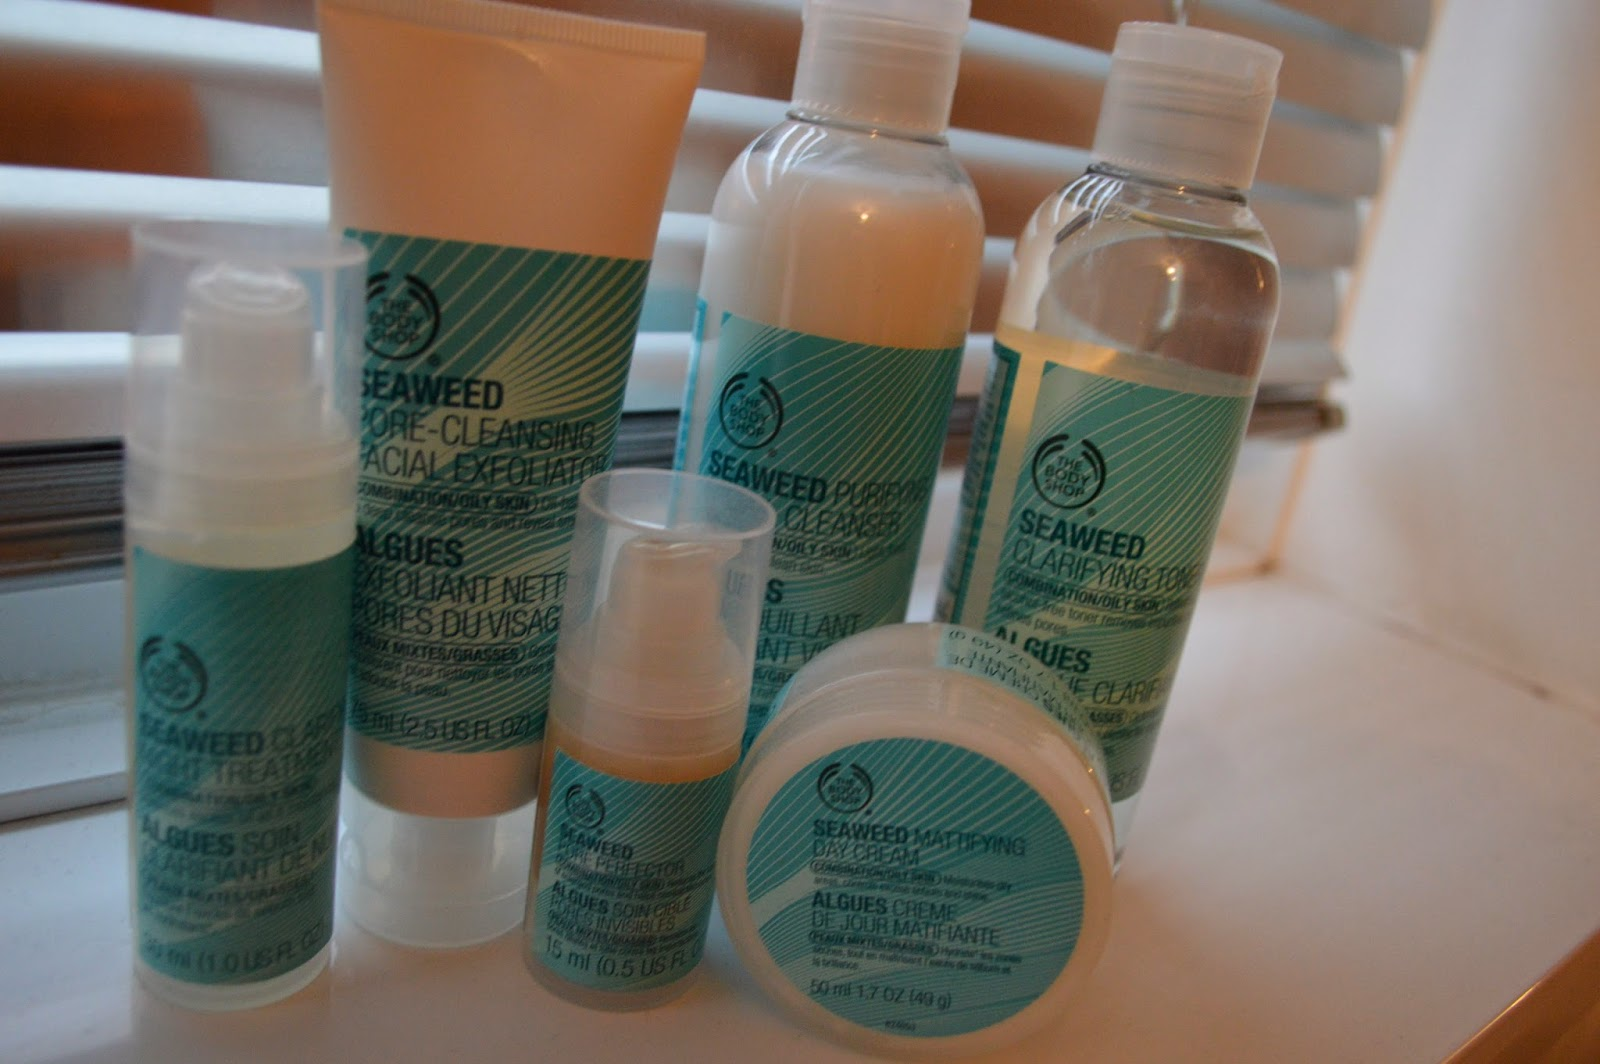 The Body Shop seaweed skincare collection